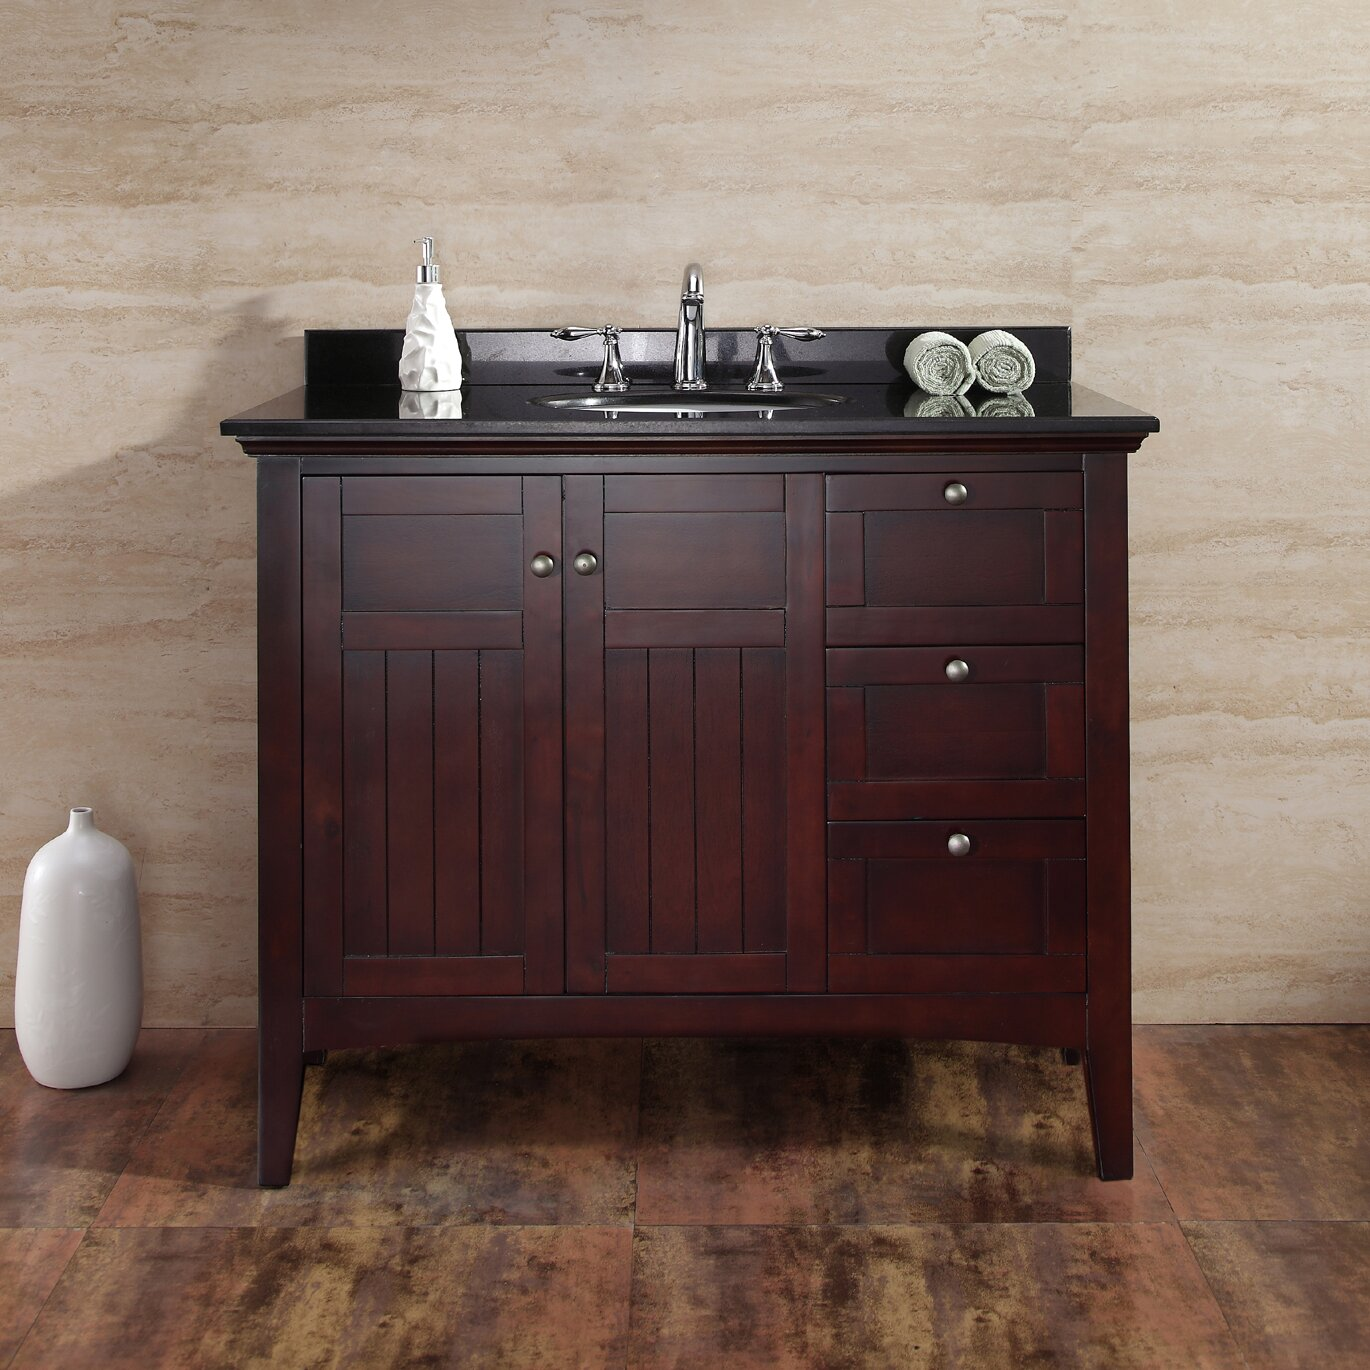 "Ove Decors Gavin 42"" Single Bathroom Vanity Set & Reviews ..."